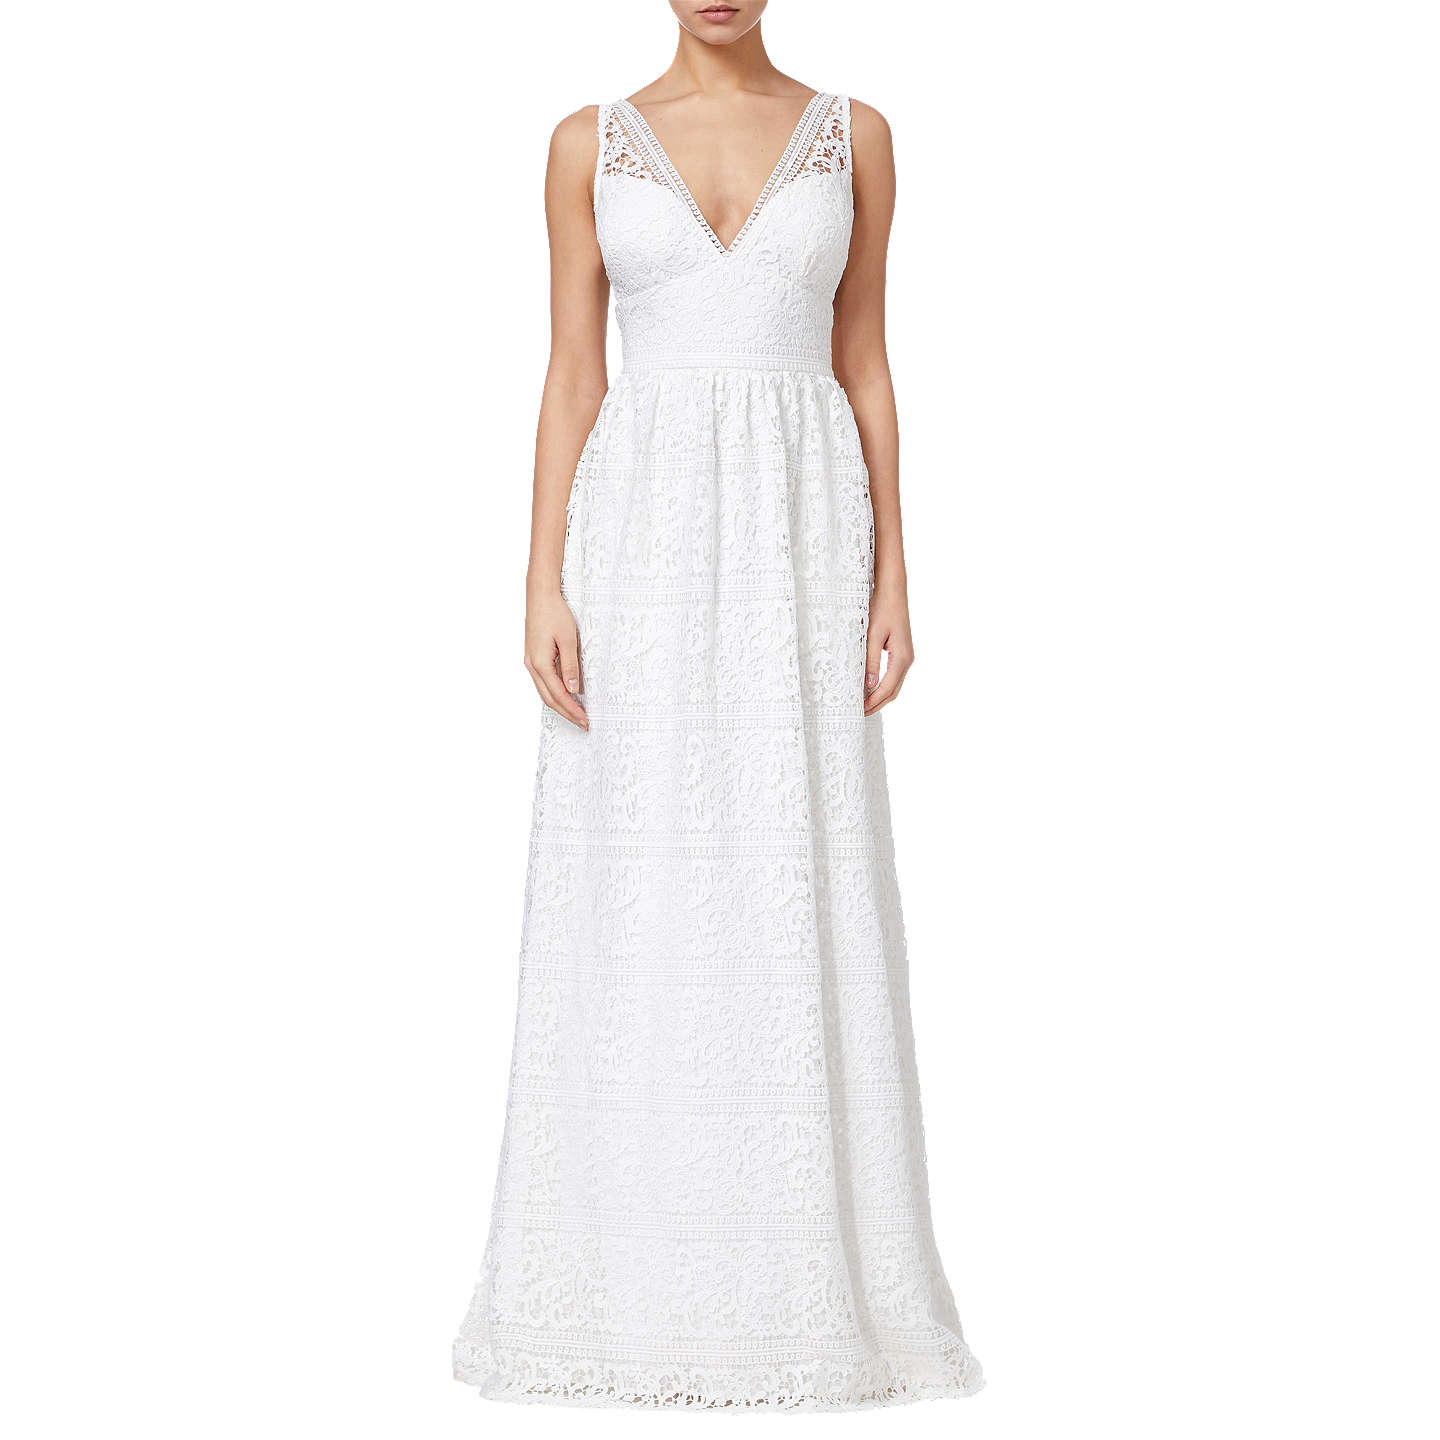 Adrianna Papell Stripe Lace Gown, Ivory at John Lewis